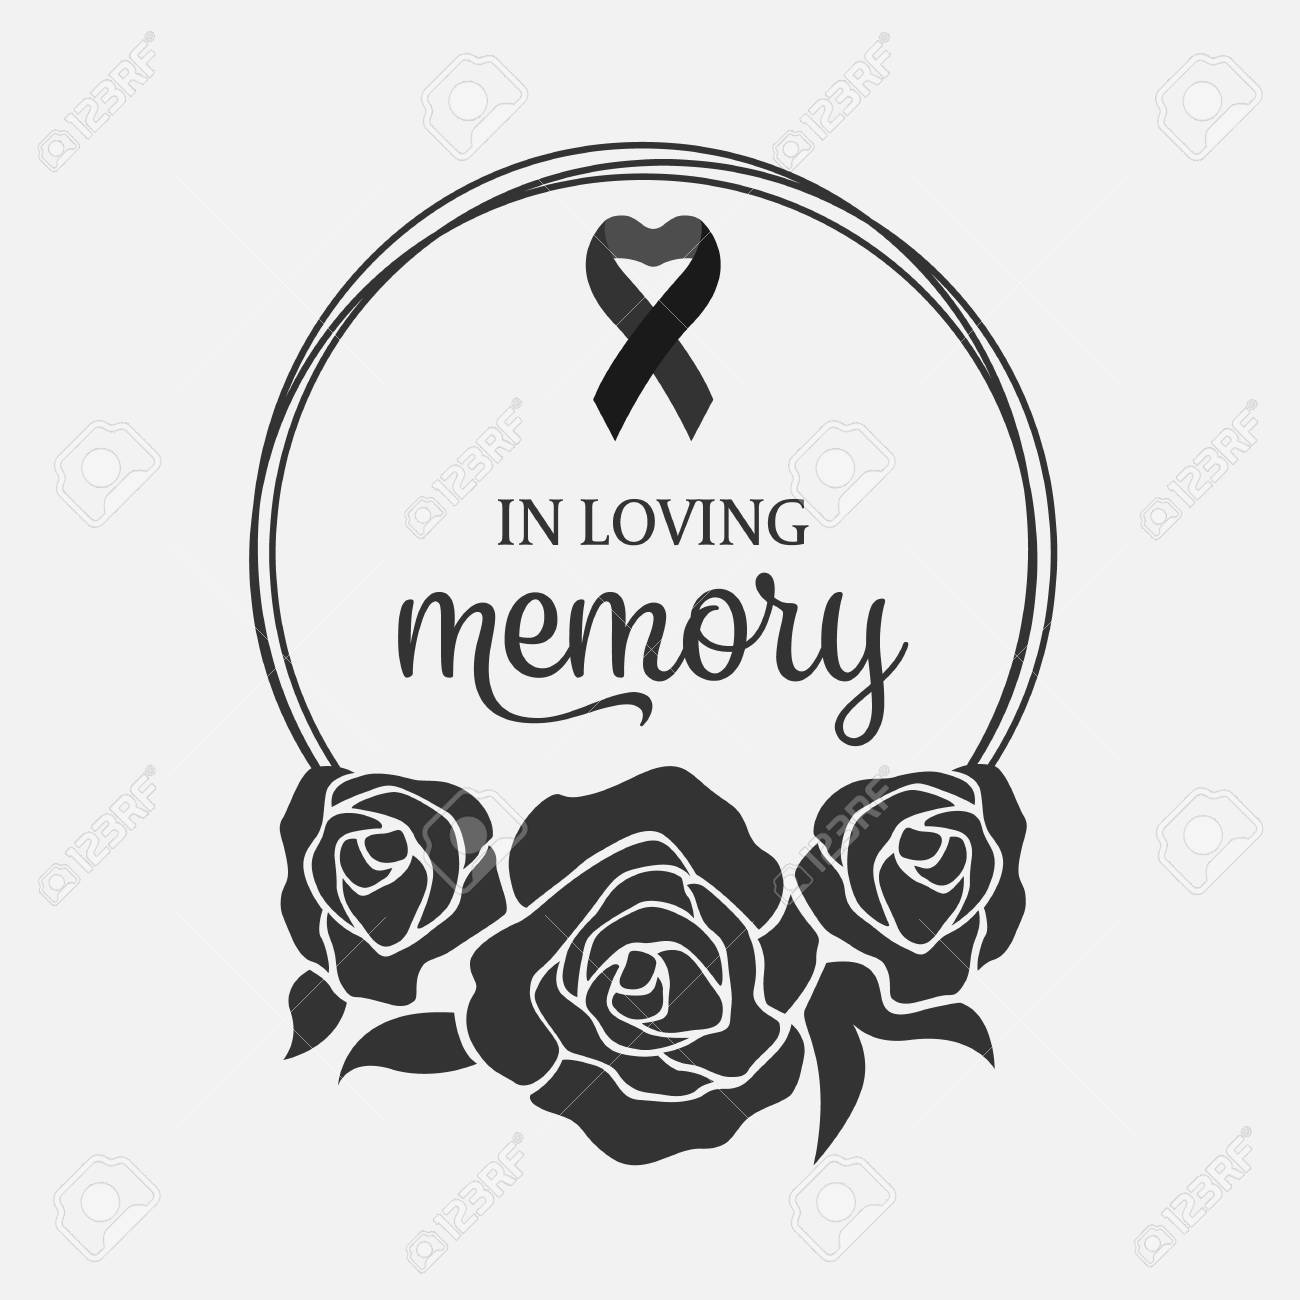 In loving Memory text and ribbon in Black Wreath rose - 111065128